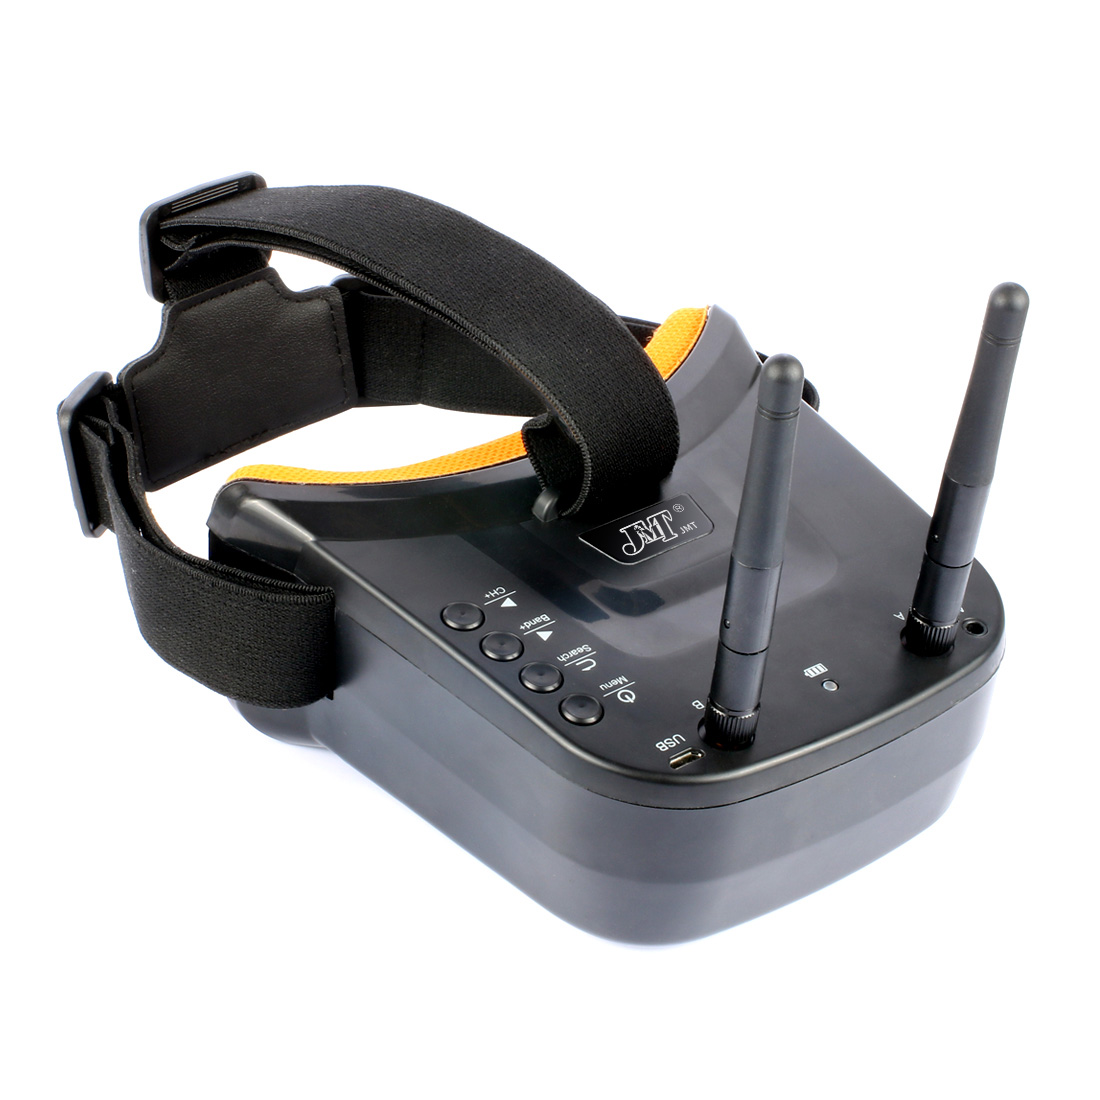 JMT Mini FPV Goggles 3 inch 480 x 320 Display Double Antenna 5.8G 40CH 3.7V 1200mAh Battery FPV System for RC Drone Mode цена и фото